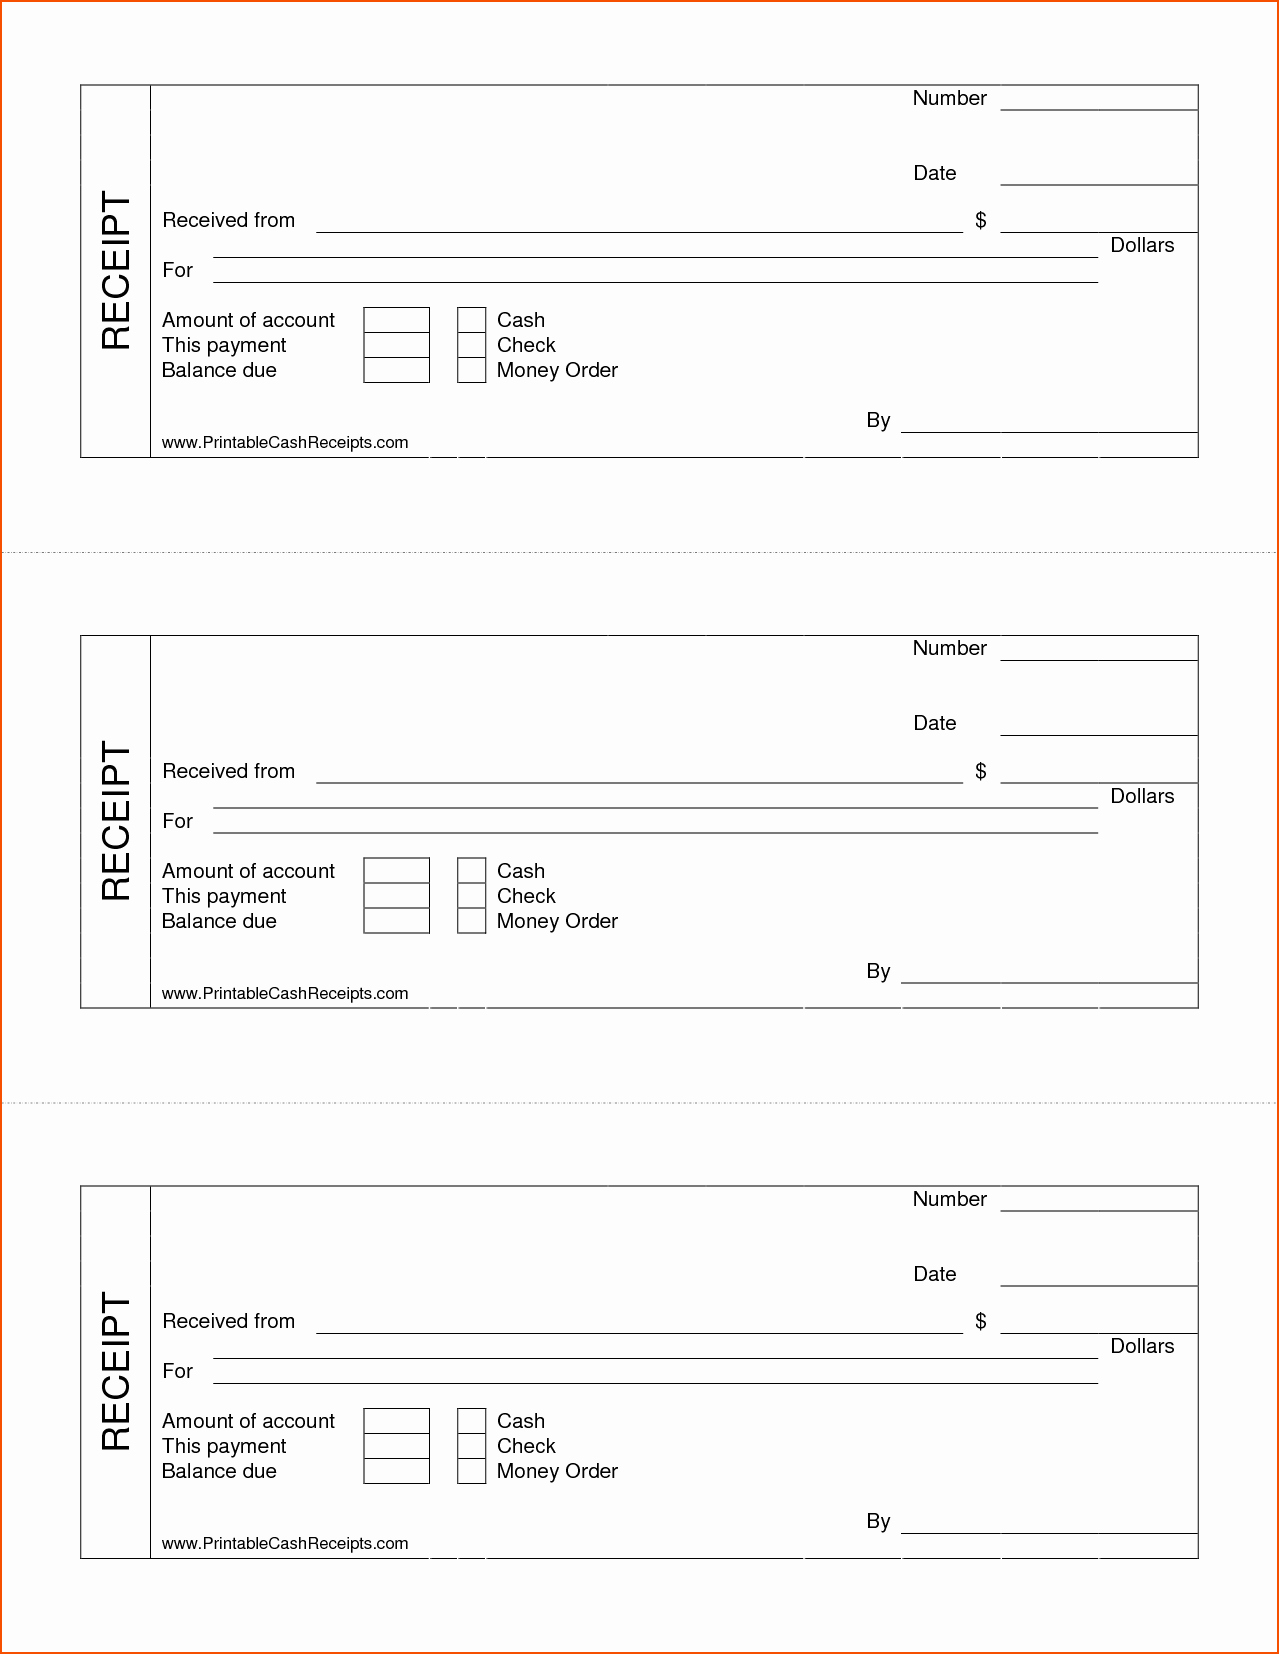 How to Print Receipts Beautiful 7 Printable Cash Receipt Bookletemplate